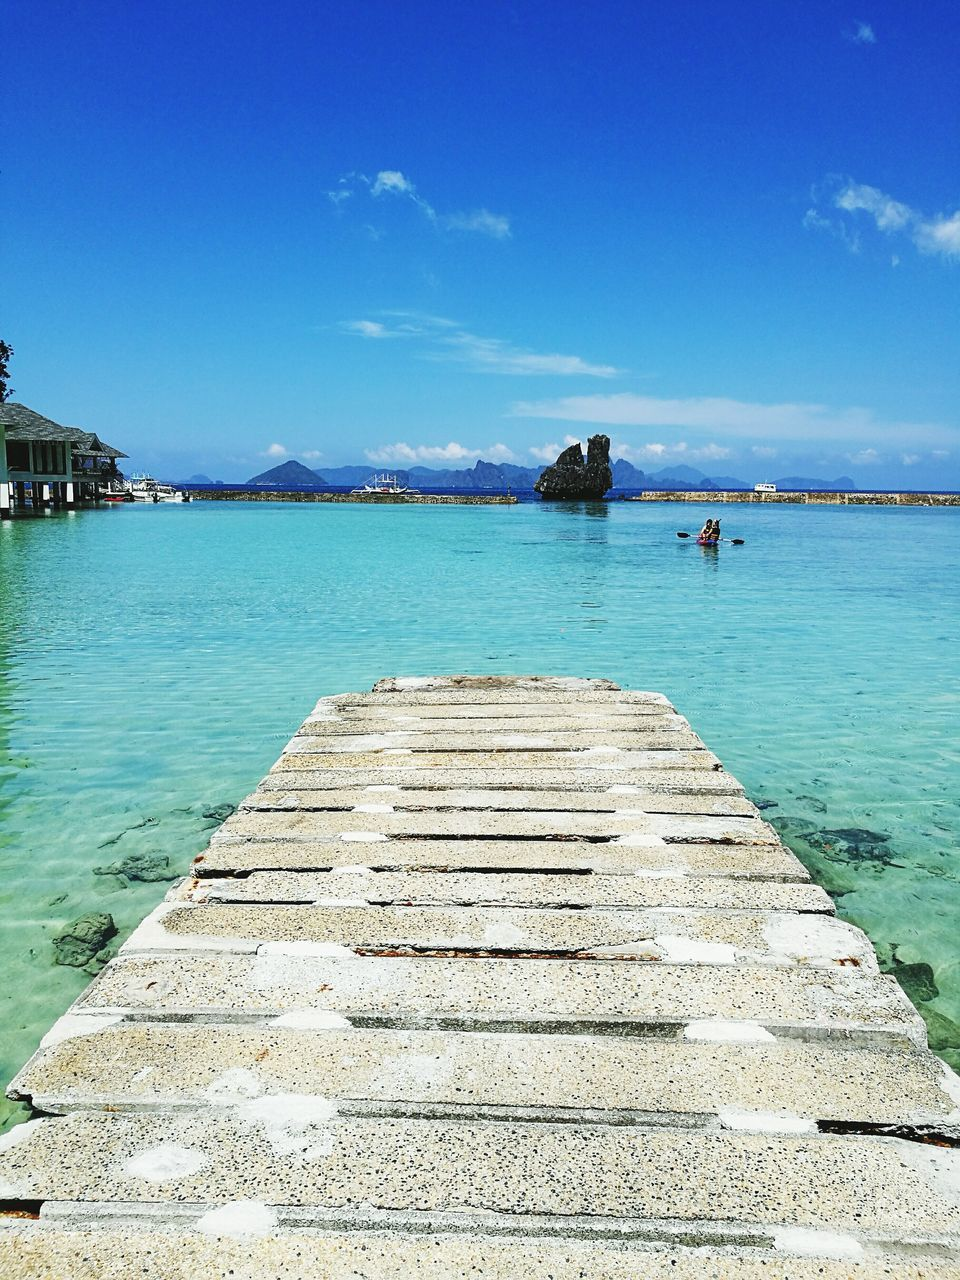 water, sea, sky, blue, nature, beauty in nature, scenics, tranquil scene, tranquility, outdoors, day, jetty, no people